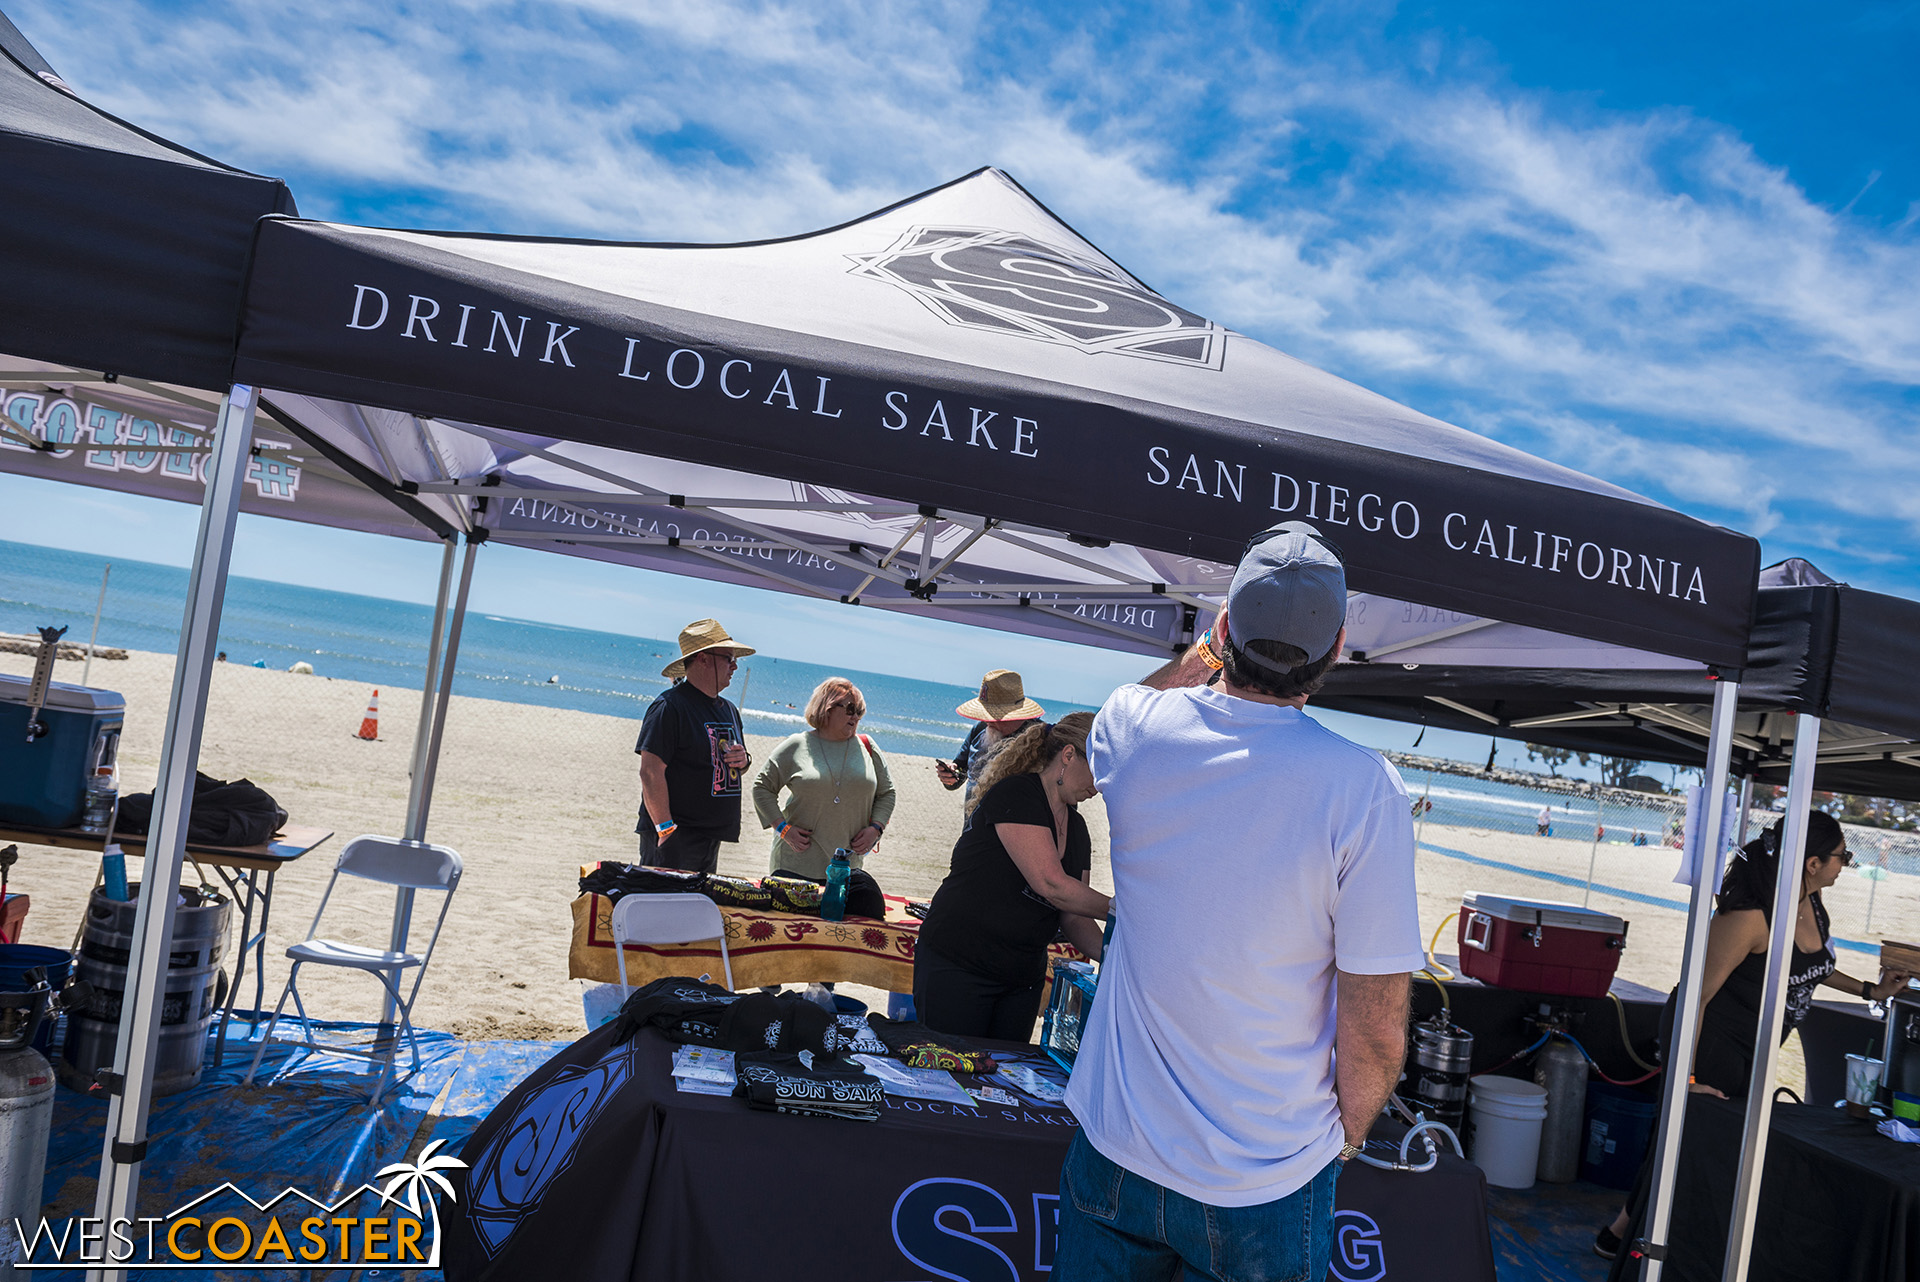 Wow, a craft sake booth?  Cool.